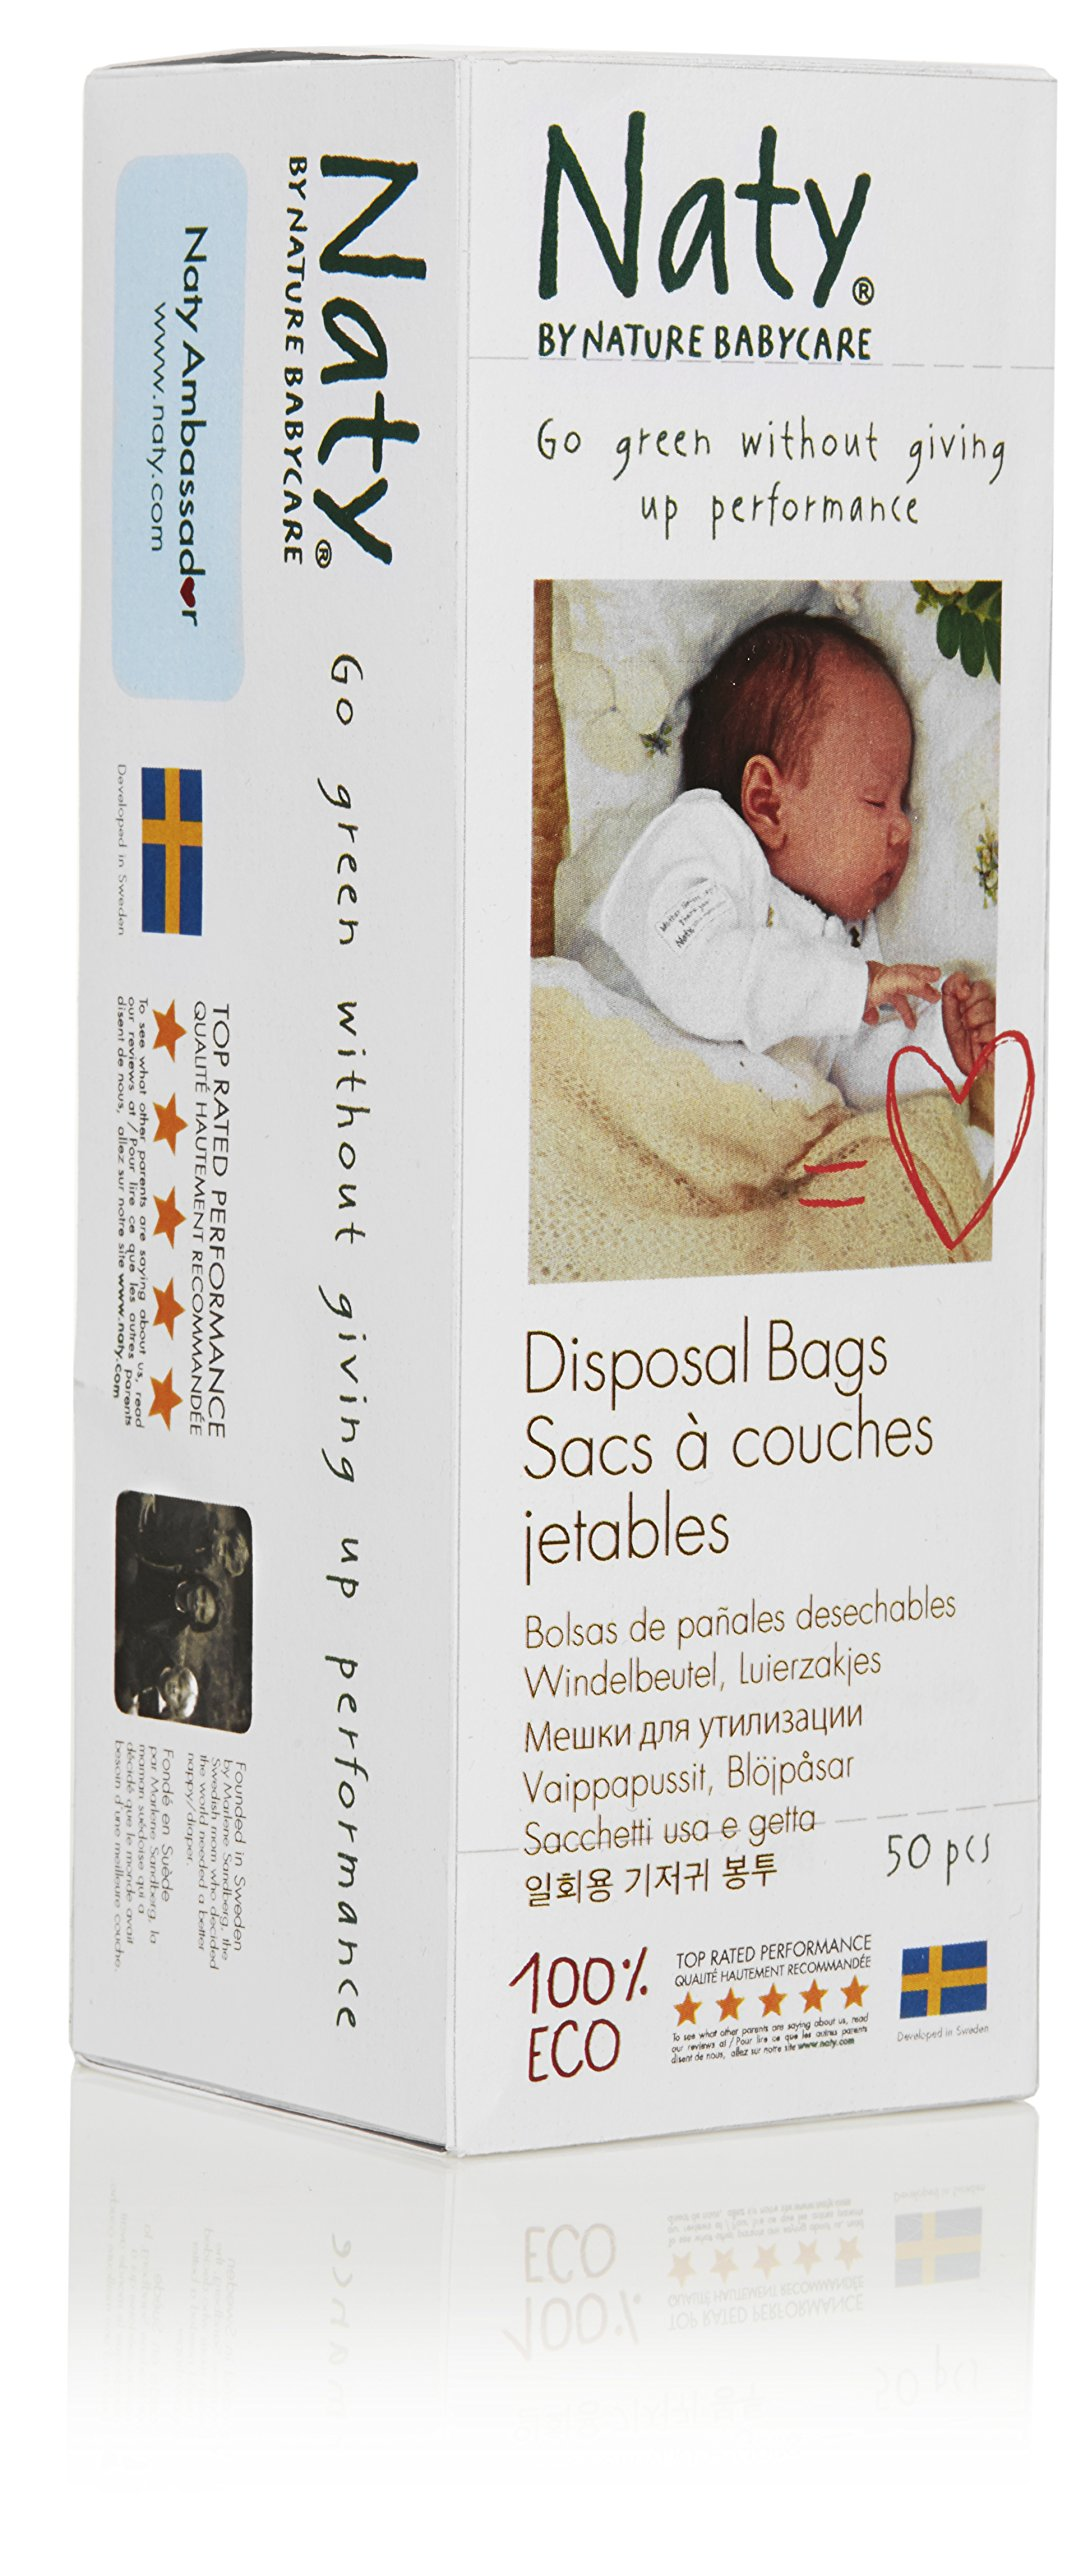 Naty by Nature Babycare Biodegradable Diaper Disposal Bags, 15 Boxes of 50 (750 Count)